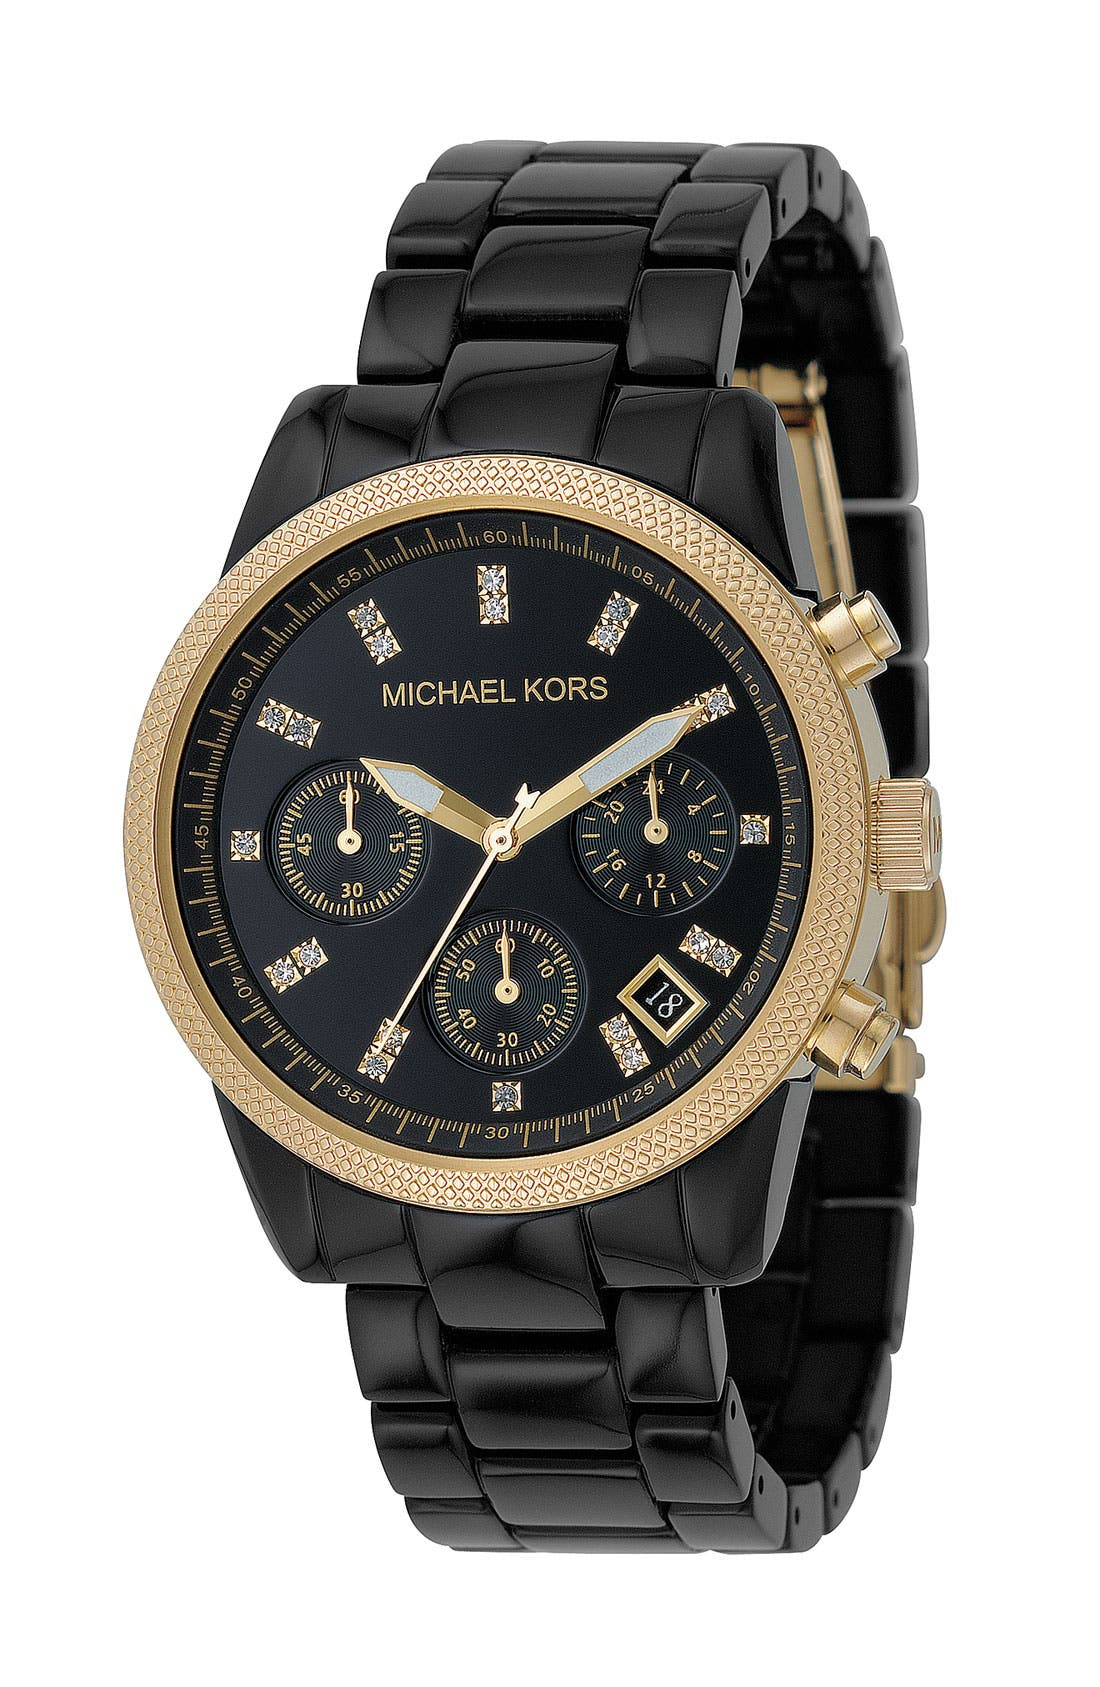 Michael Kors 'The Ritz' Chronograph Bracelet Watch, 36mm,                             Main thumbnail 1, color,                             001